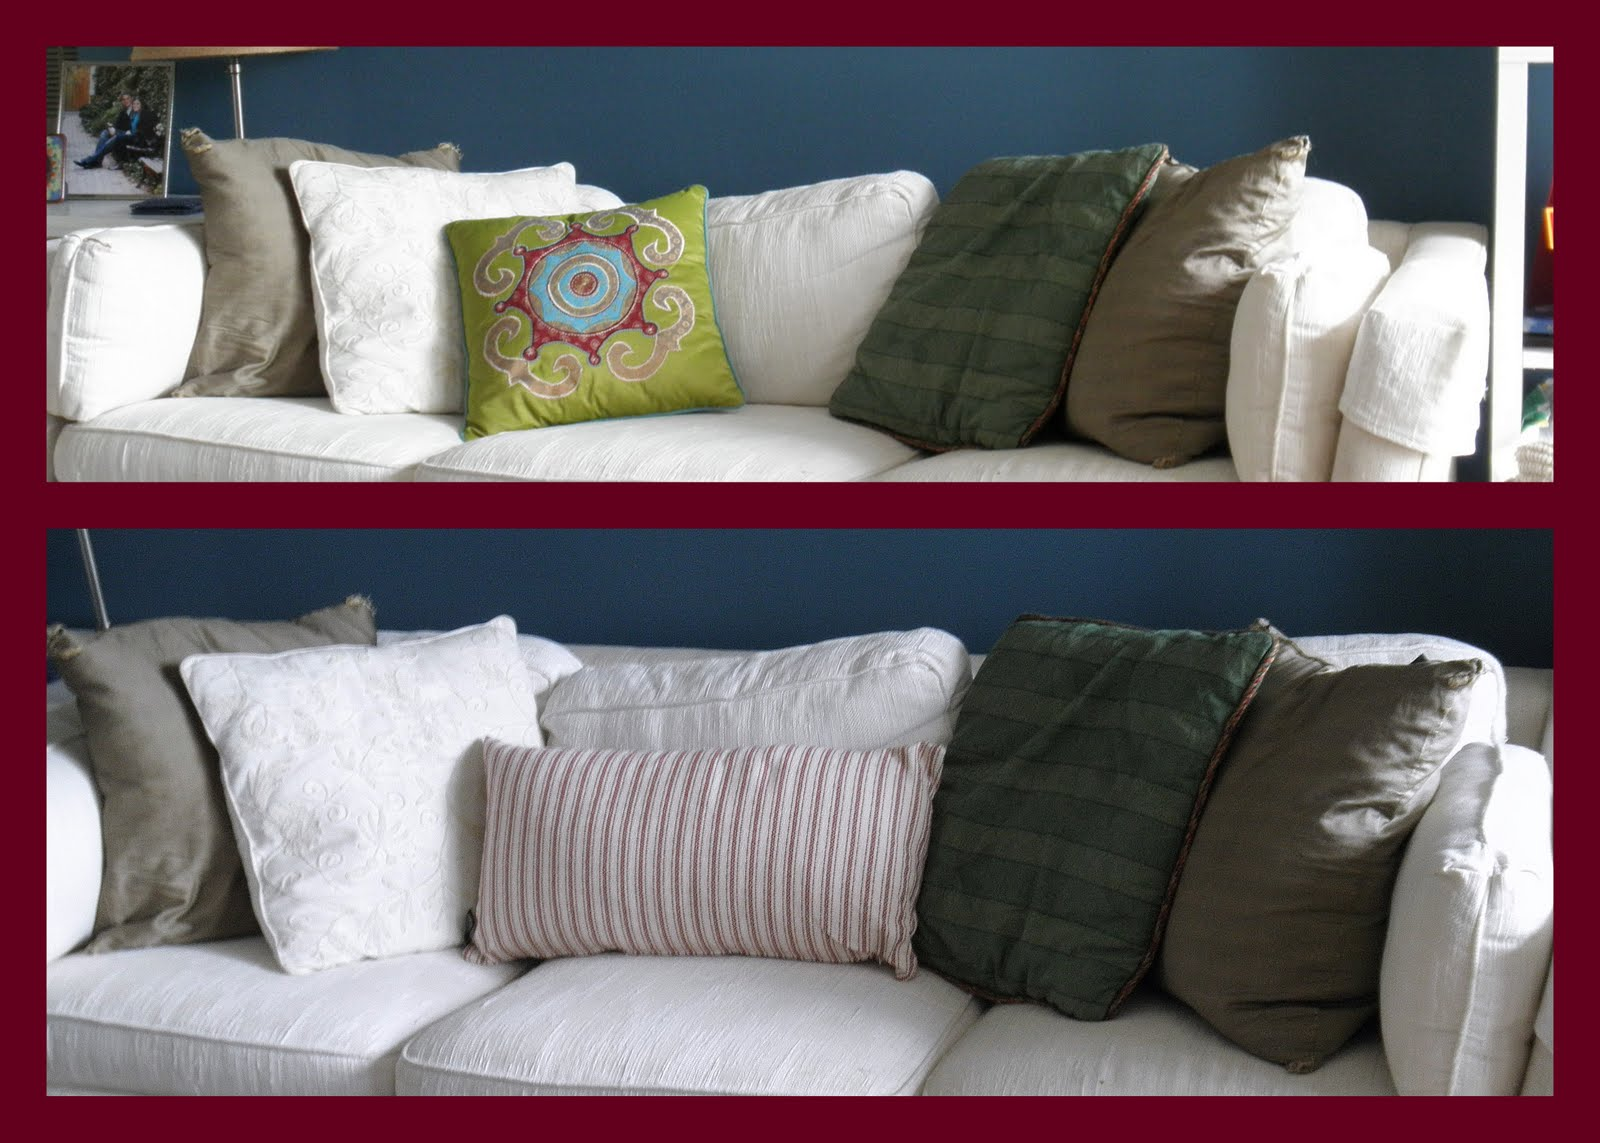 Living a beautifully blessed life: The How-to s of Throw Pillows {for and from a beginner}